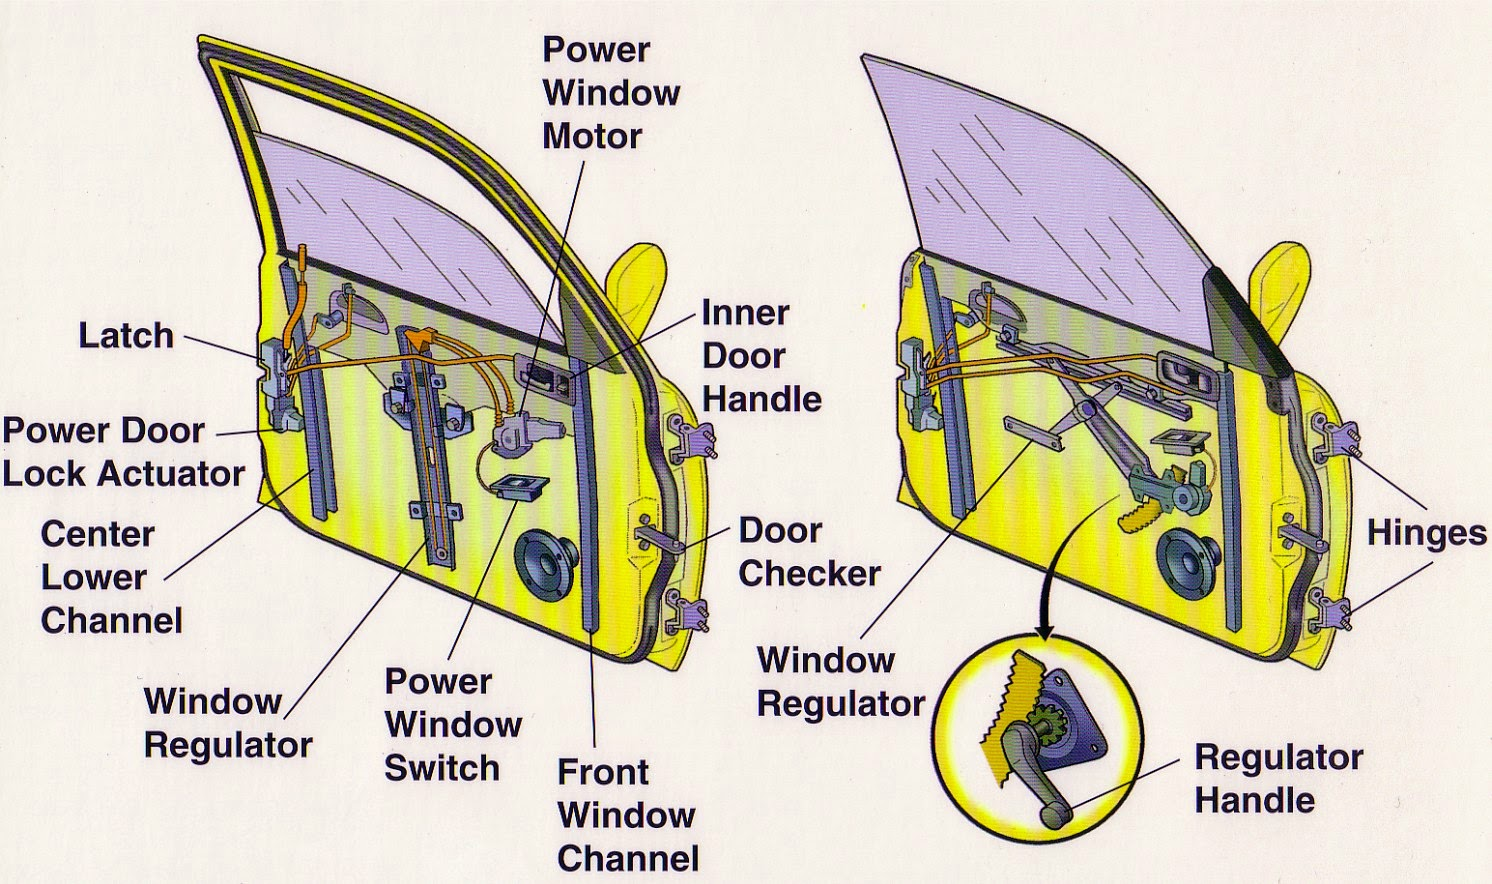 a window is either powered or manual